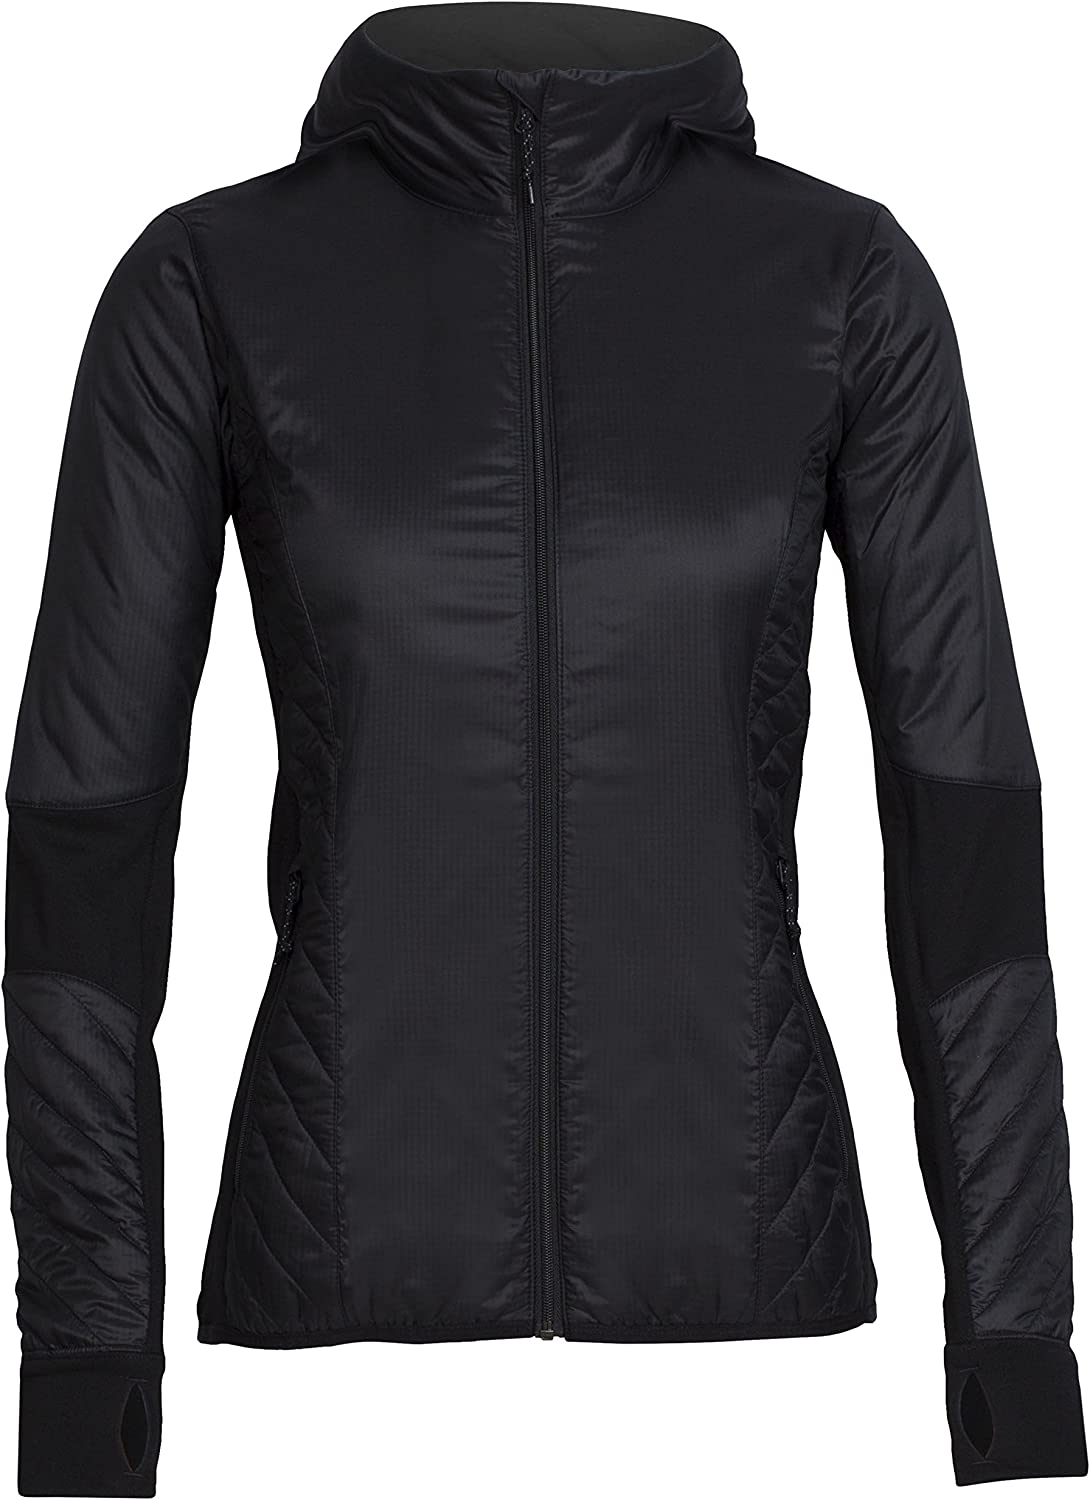 New Zealand Merino Wool 103431406M Icebreaker Merino Helix Jacket